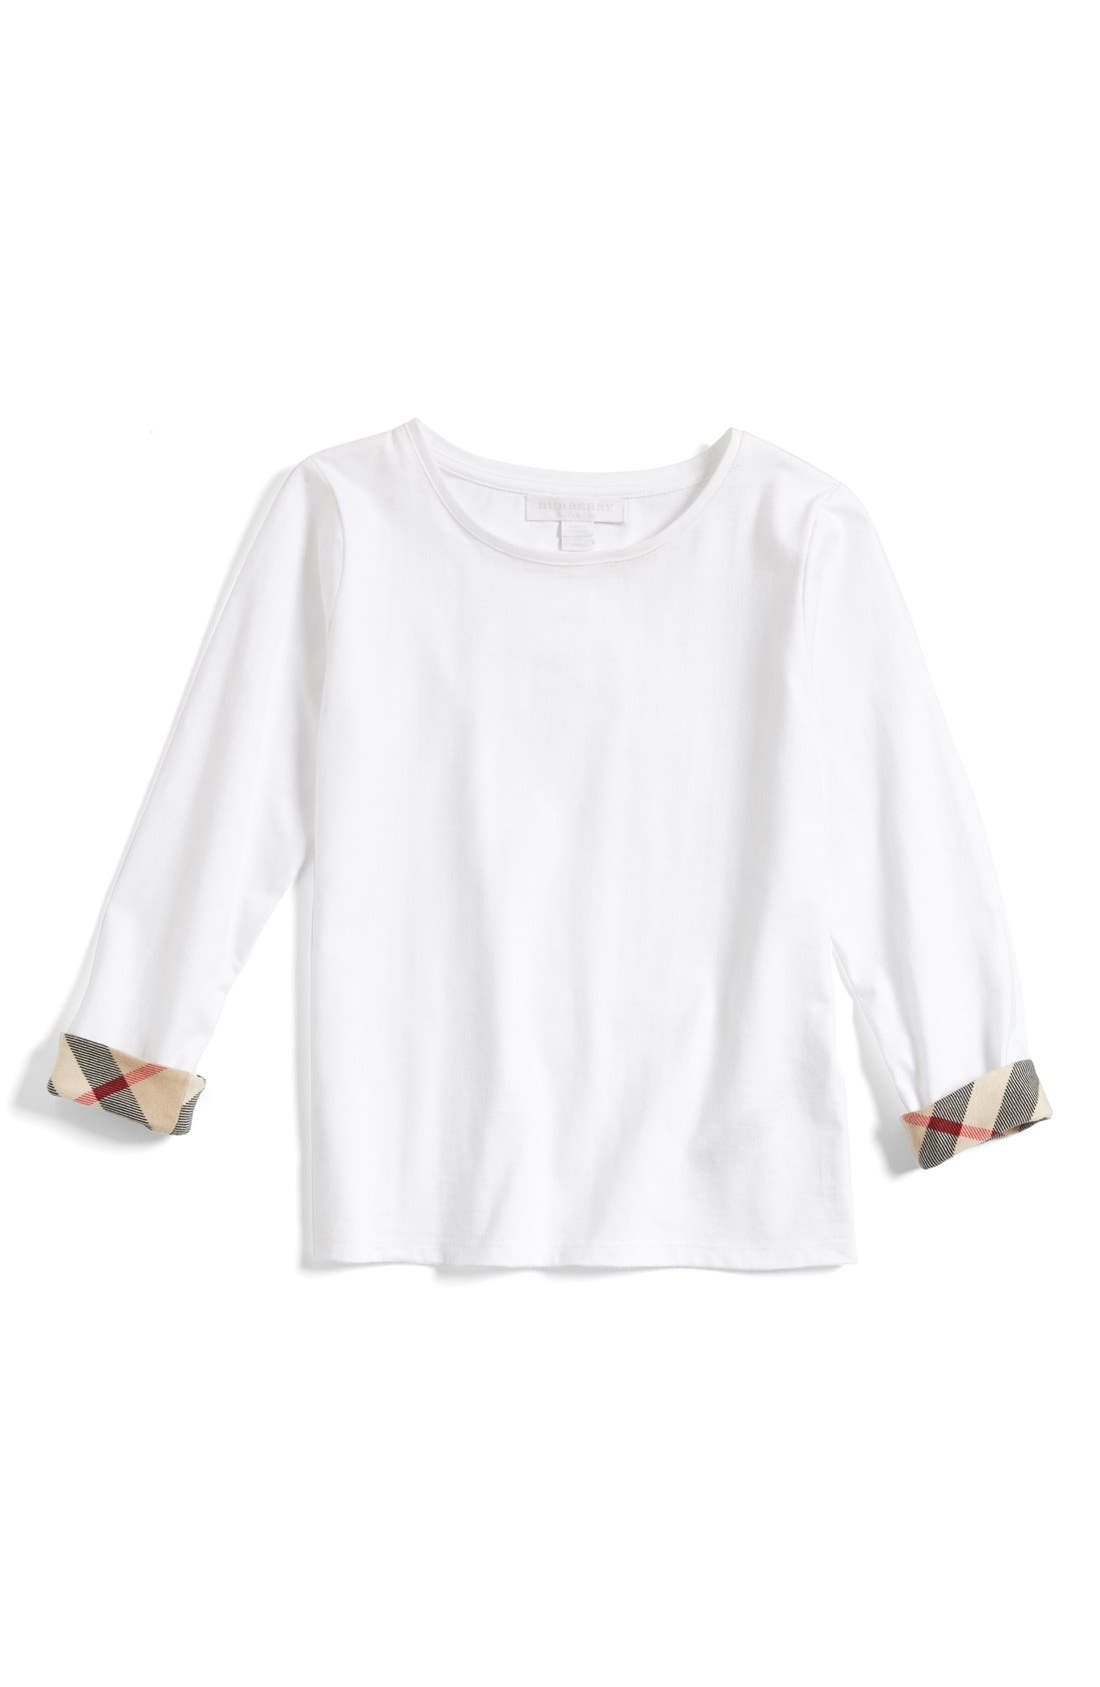 Alternate Image 1 Selected - Burberry 'Tulisa' Tee (Little Girls & Big Girls)